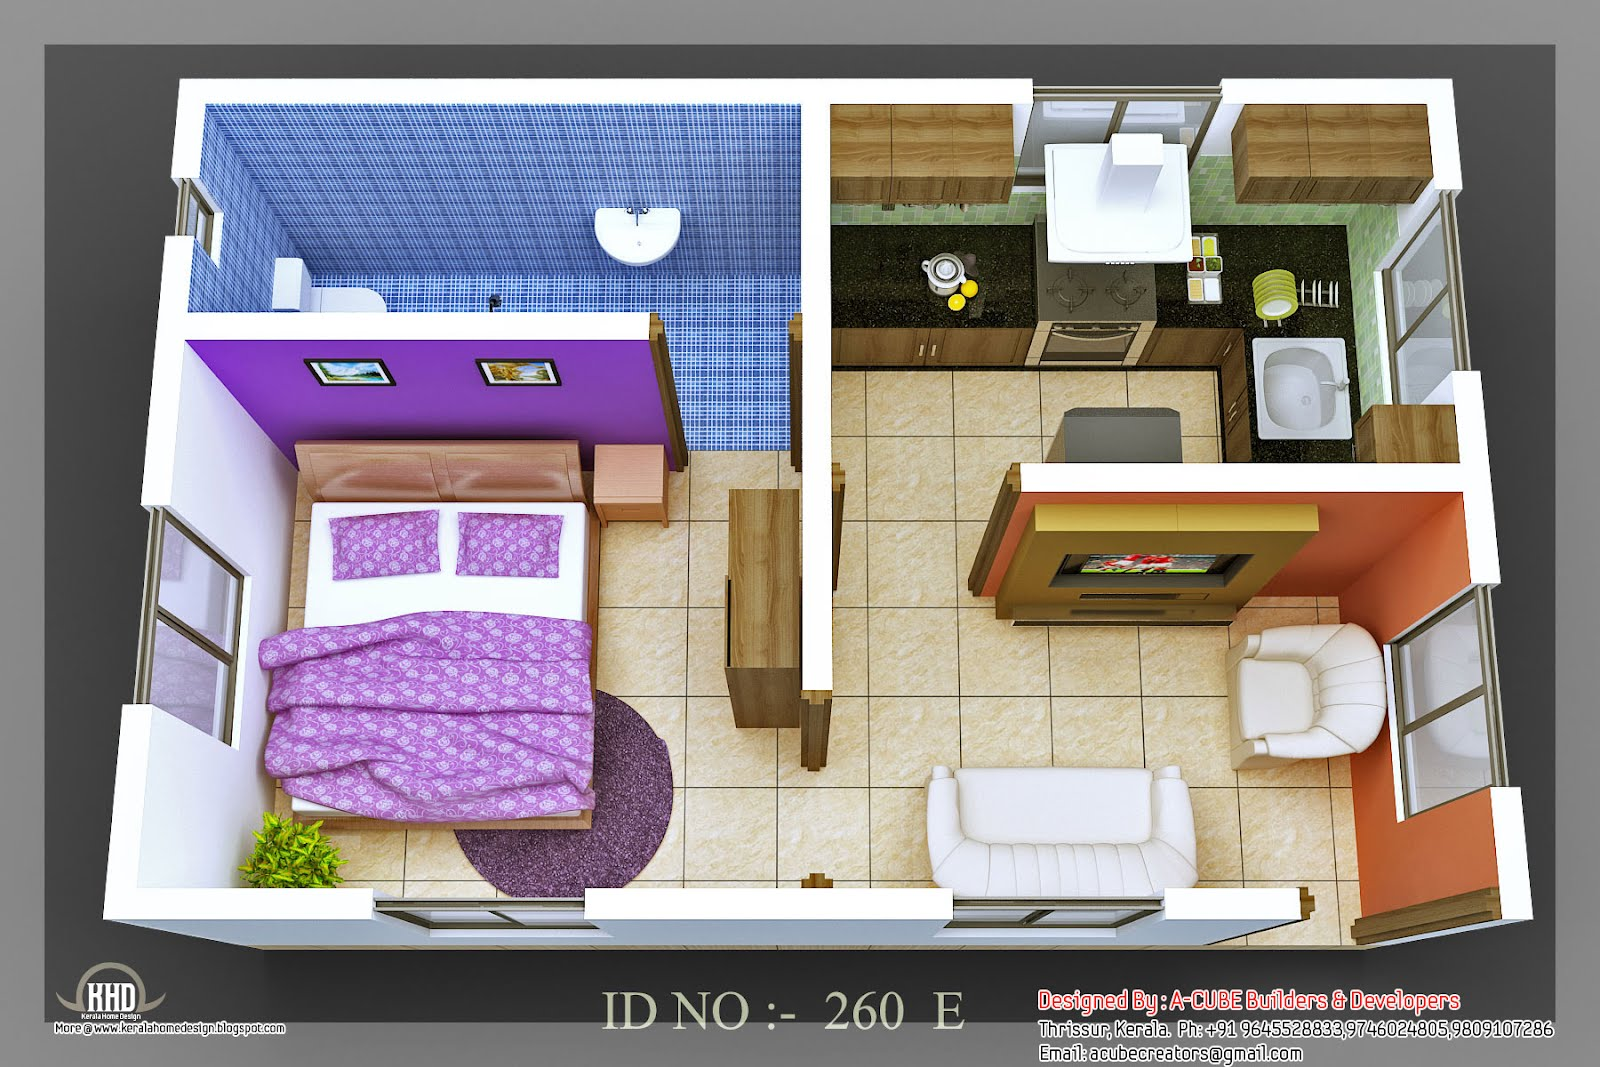 3d isometric views of small house plans home appliance Home design plans 3d